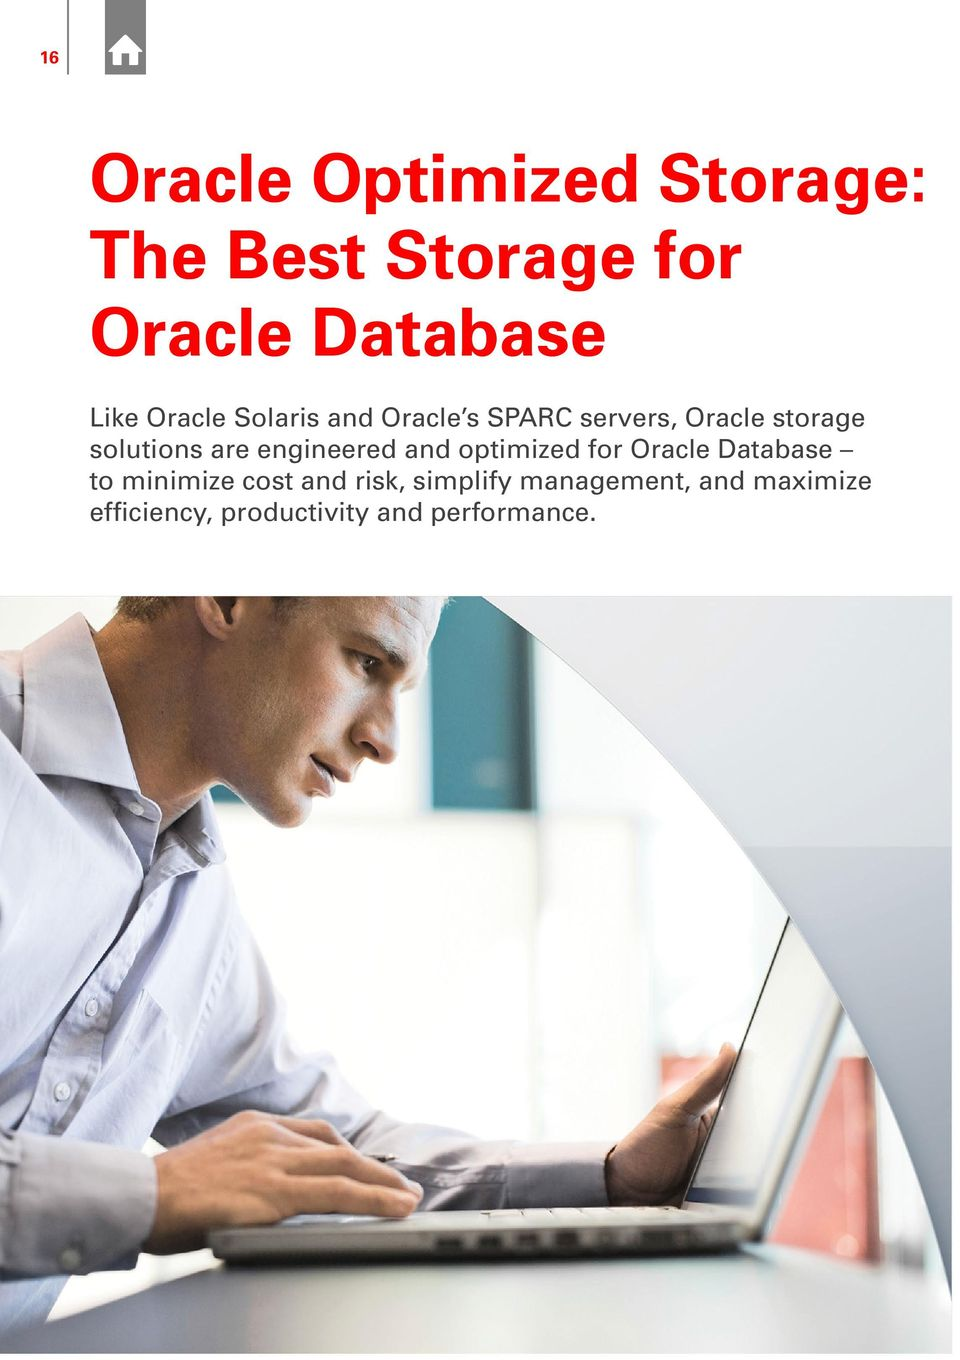 engineered and optimized for Oracle Database to minimize cost and risk,